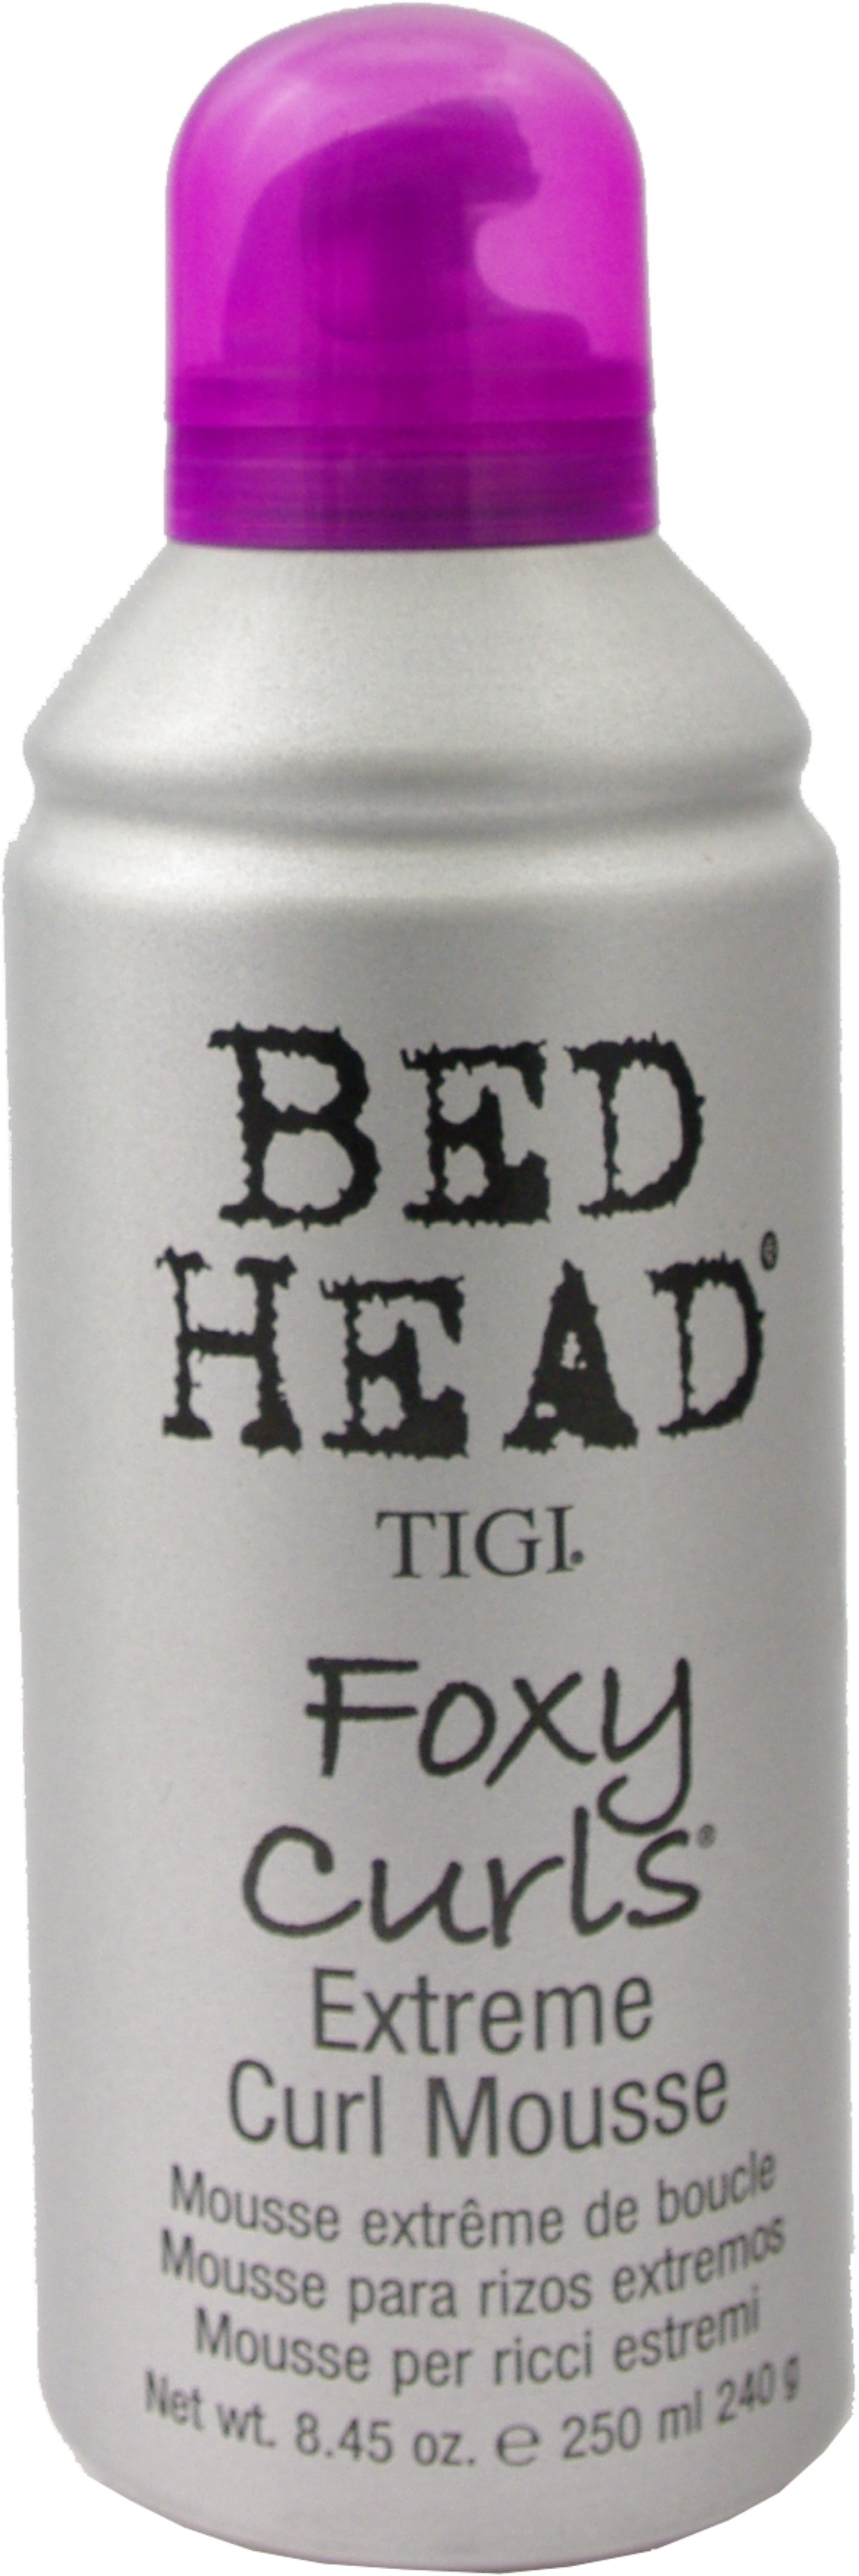 TIGI Bed Head Styling & Finish FOXY CURLS Extreme Curl Mousse 250 ml